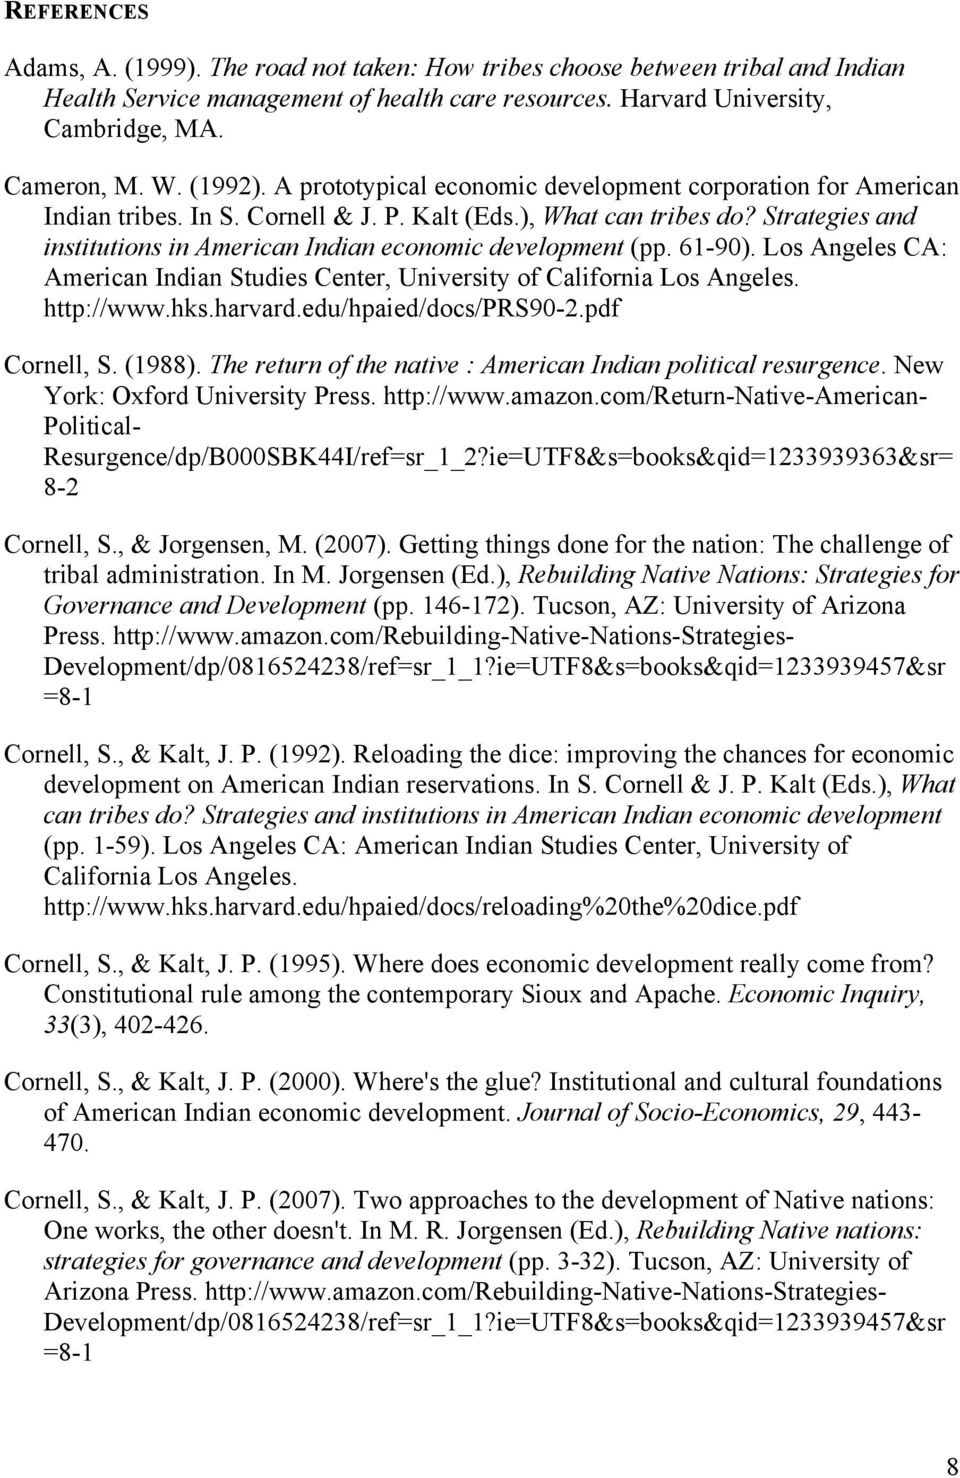 Strategies and institutions in American Indian economic development (pp. 61-90). Los Angeles CA: American Indian Studies Center, University of California Los Angeles. http://www.hks.harvard.